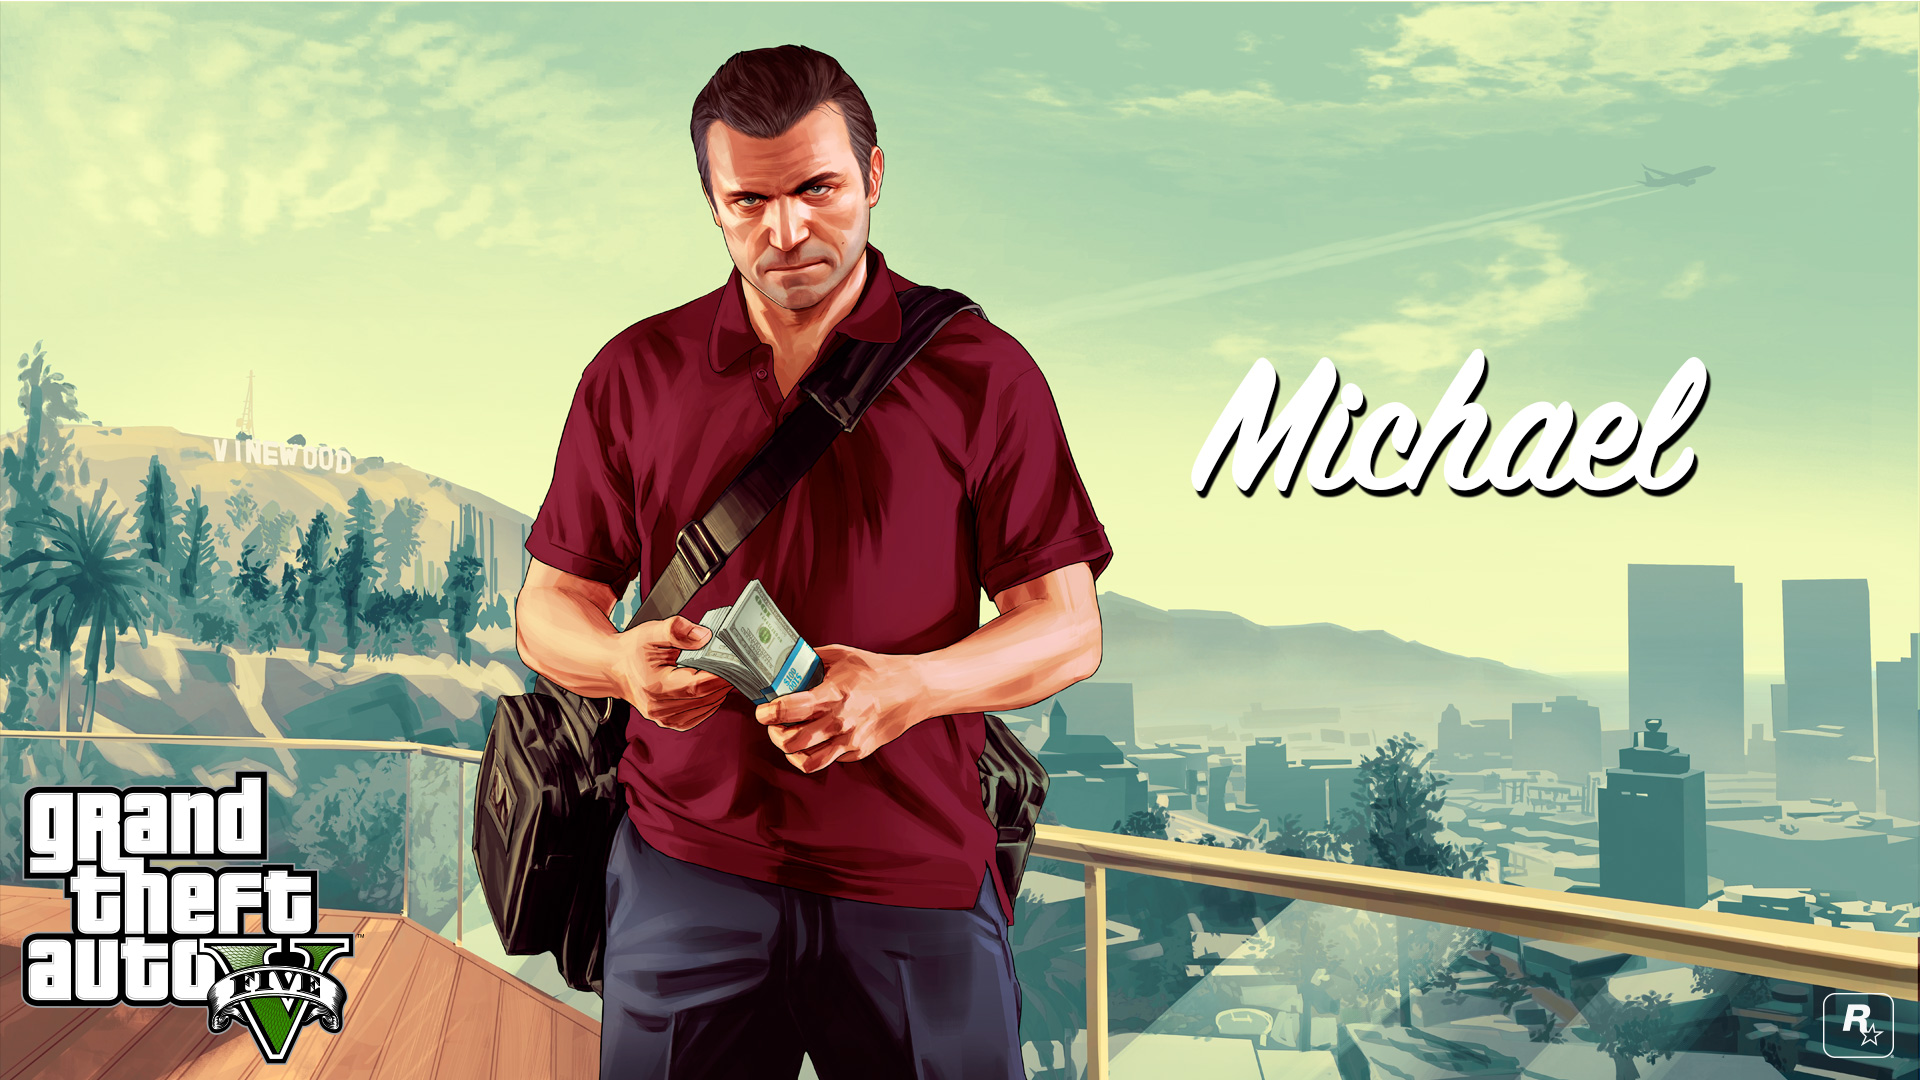 por douglas alexsander marcadores gta v wallpapers wallpapers de jogos 1920x1080